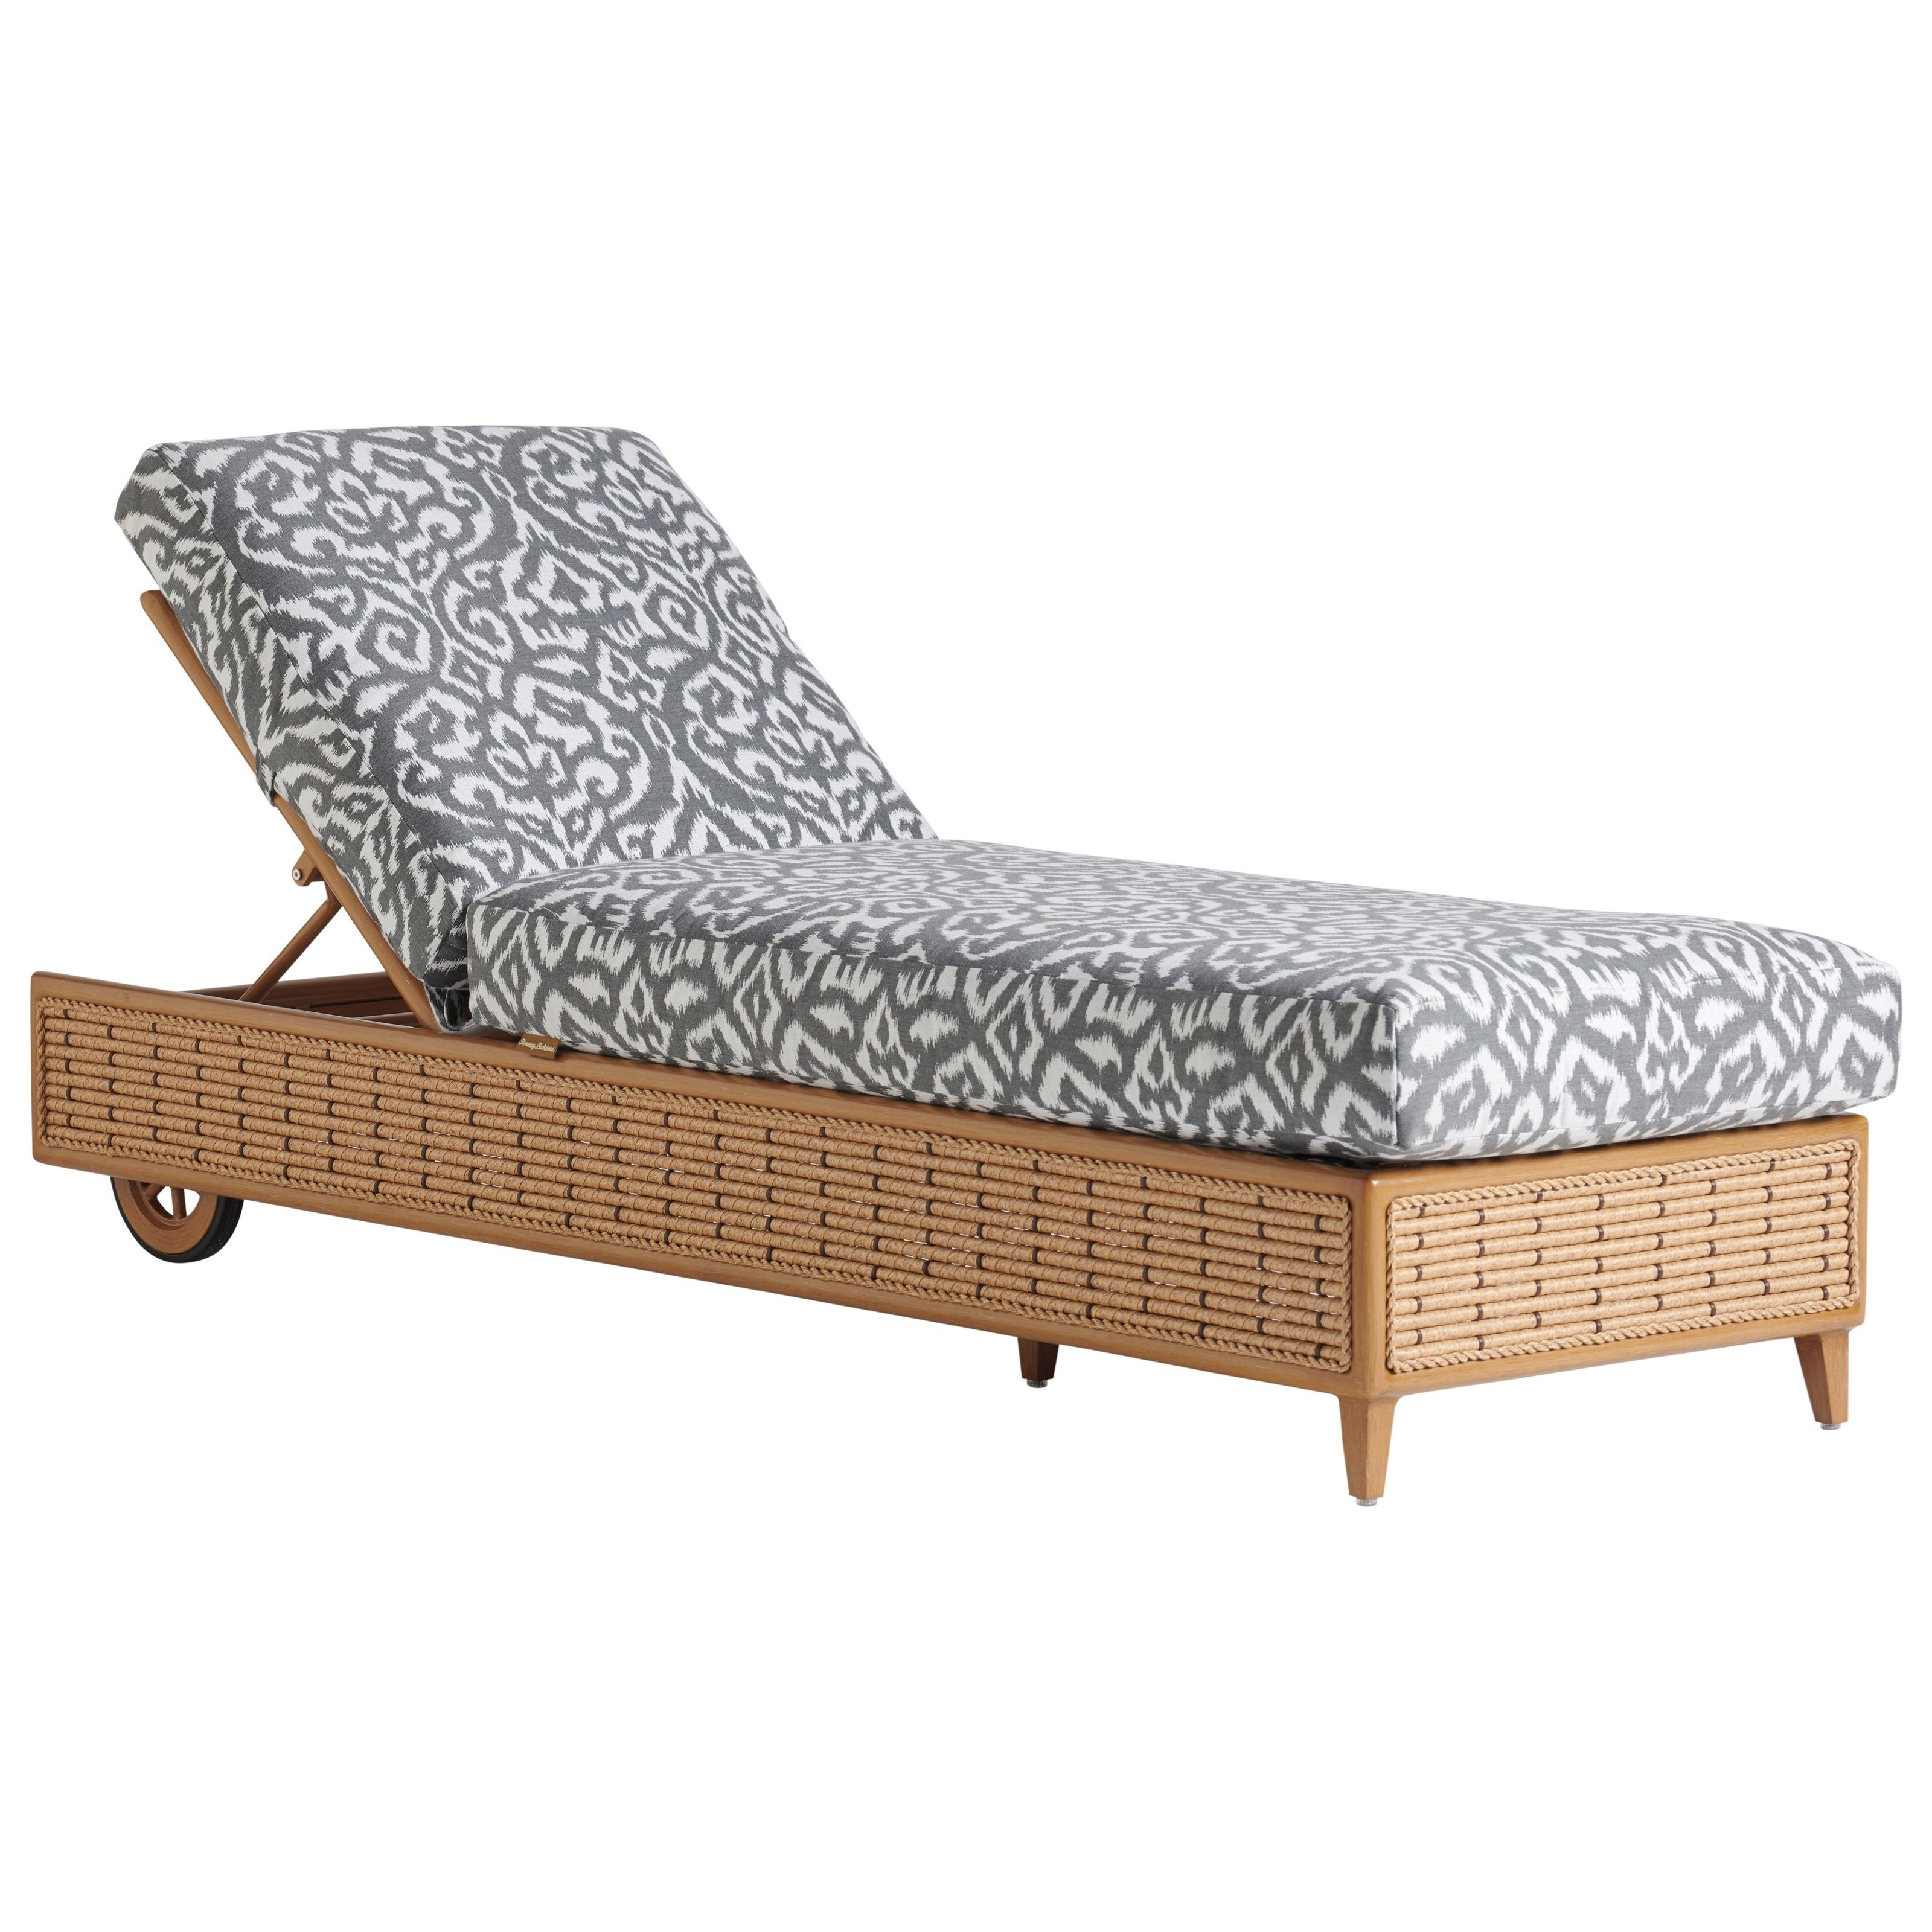 Los Altos Valley View Chaise Lounge by Tommy Bahama Outdoor Living at Baer's Furniture